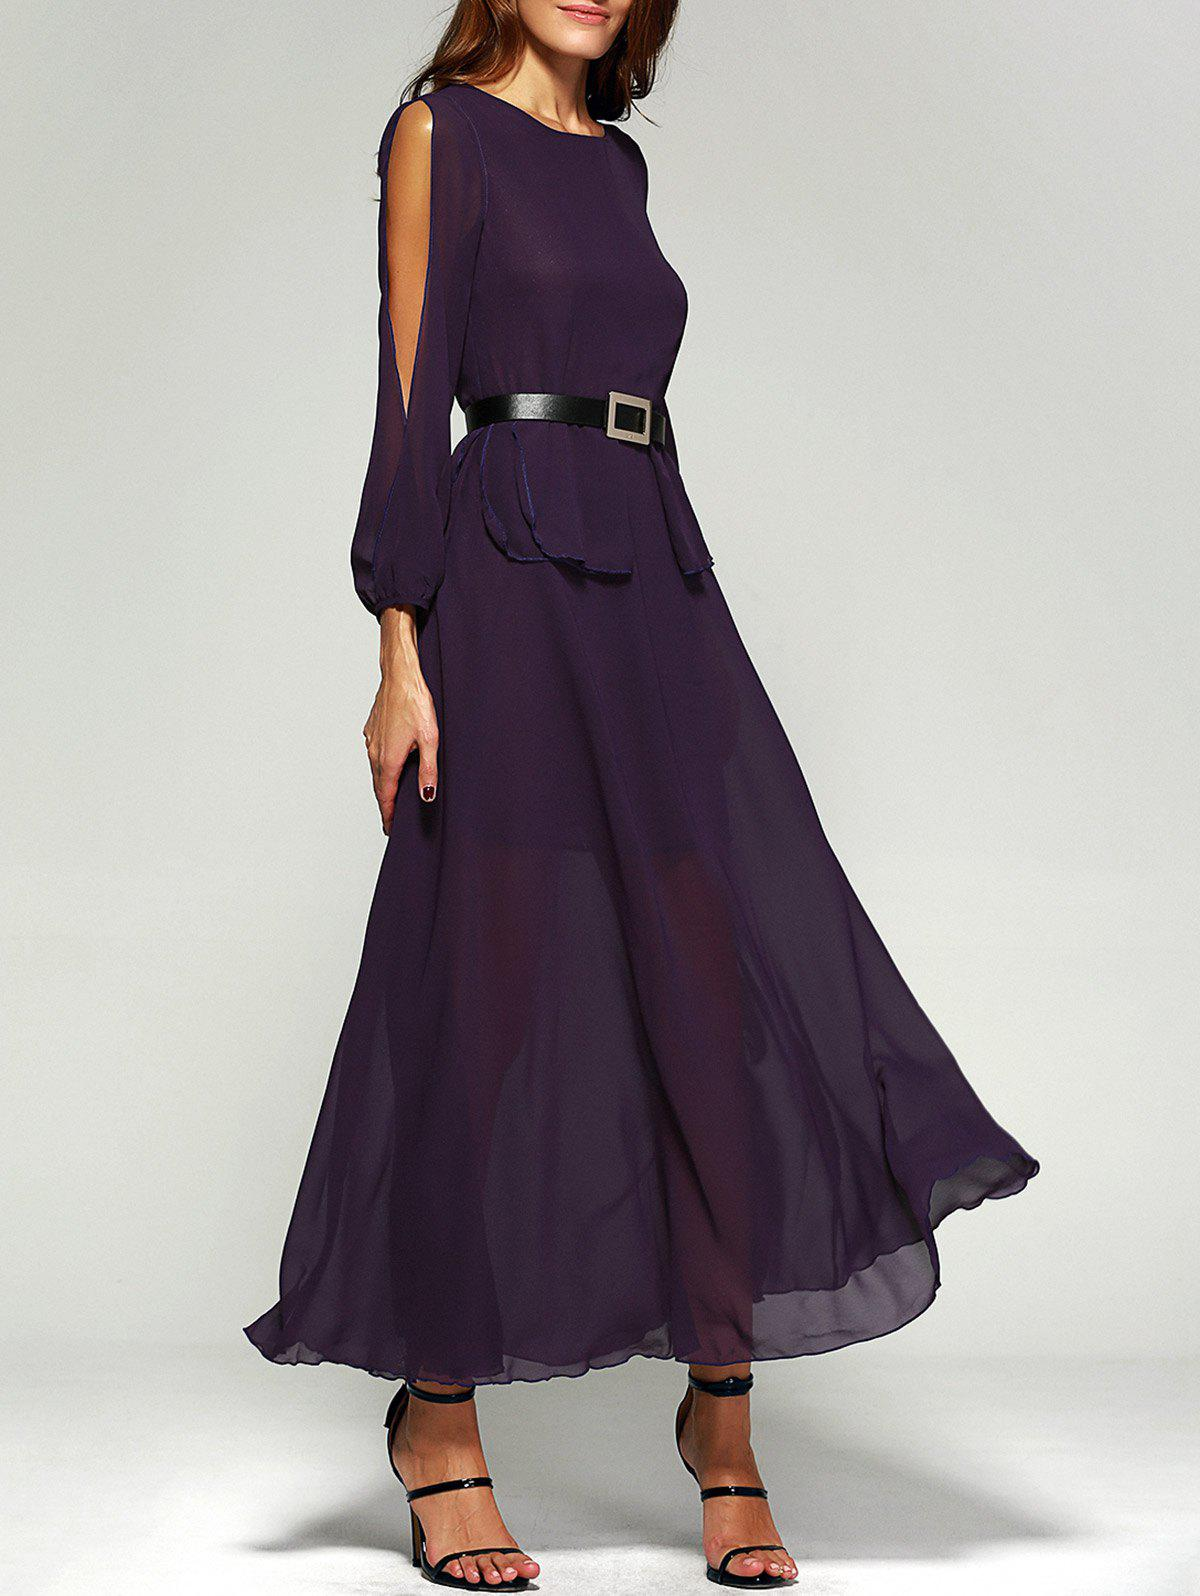 Hollow Out Splicing Pleated Chiffon Maxi Dress with Sleeves - PURPLE XL